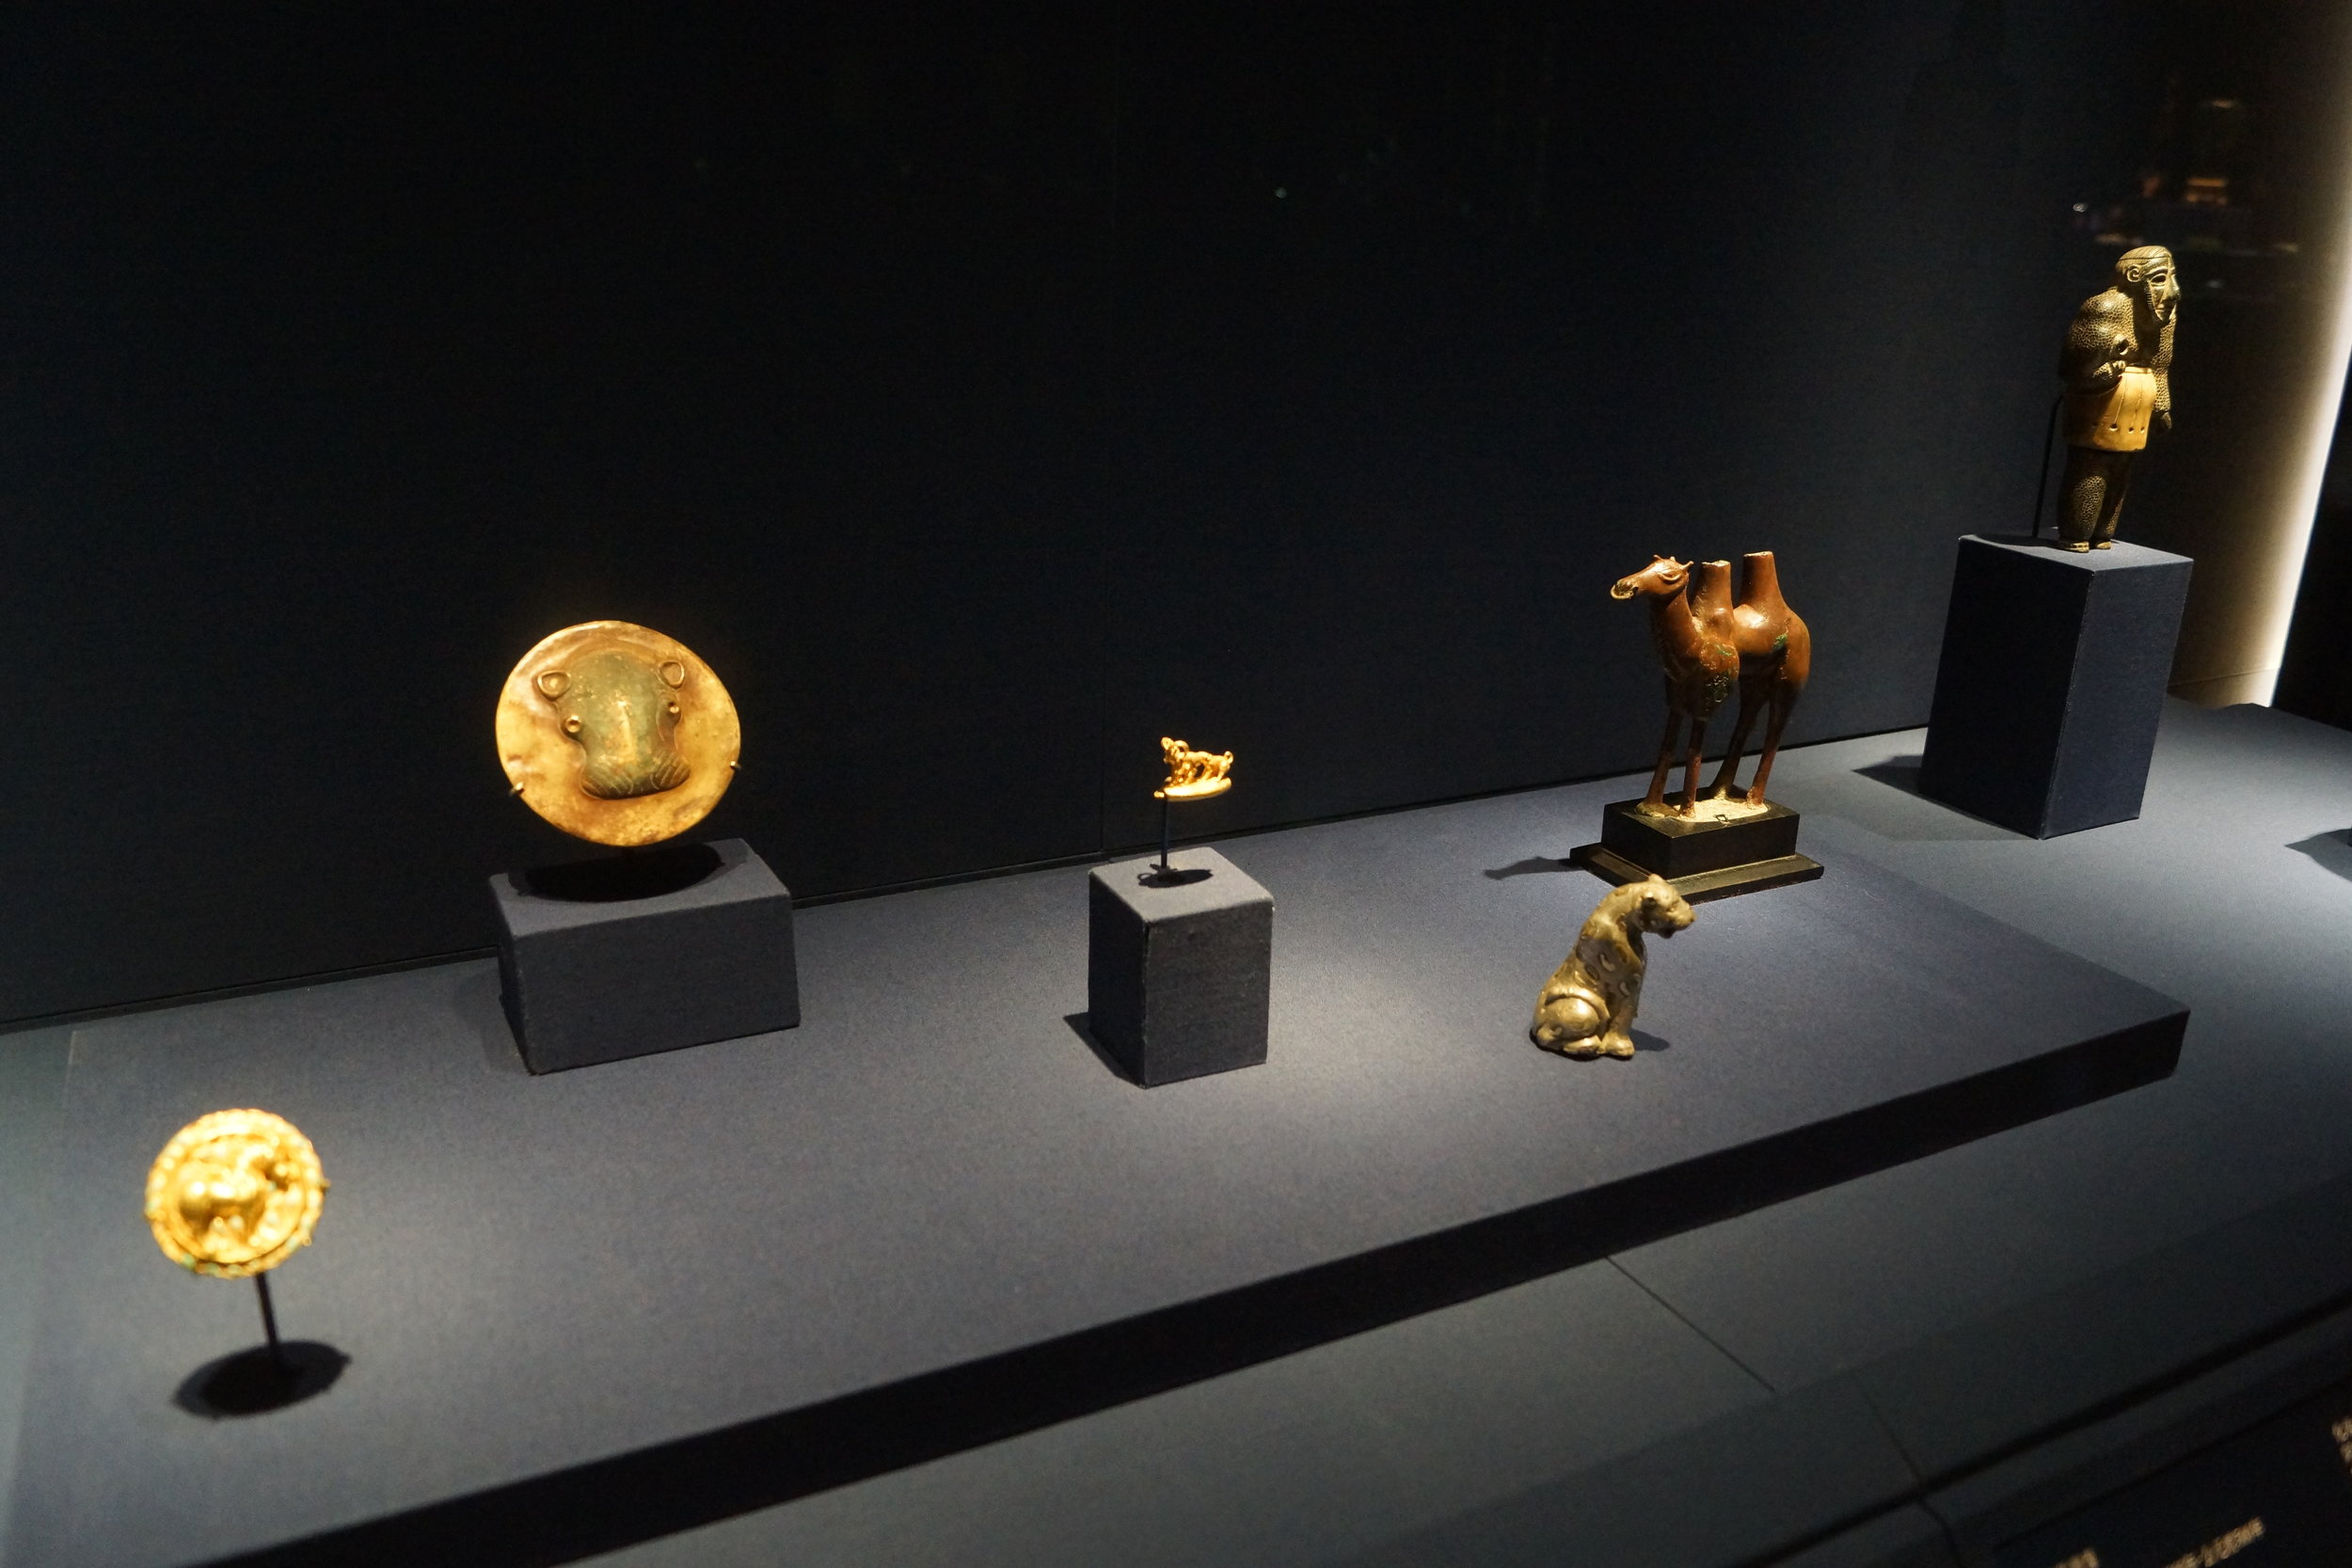 Some interesting artefacts confined in the Forbidden City.